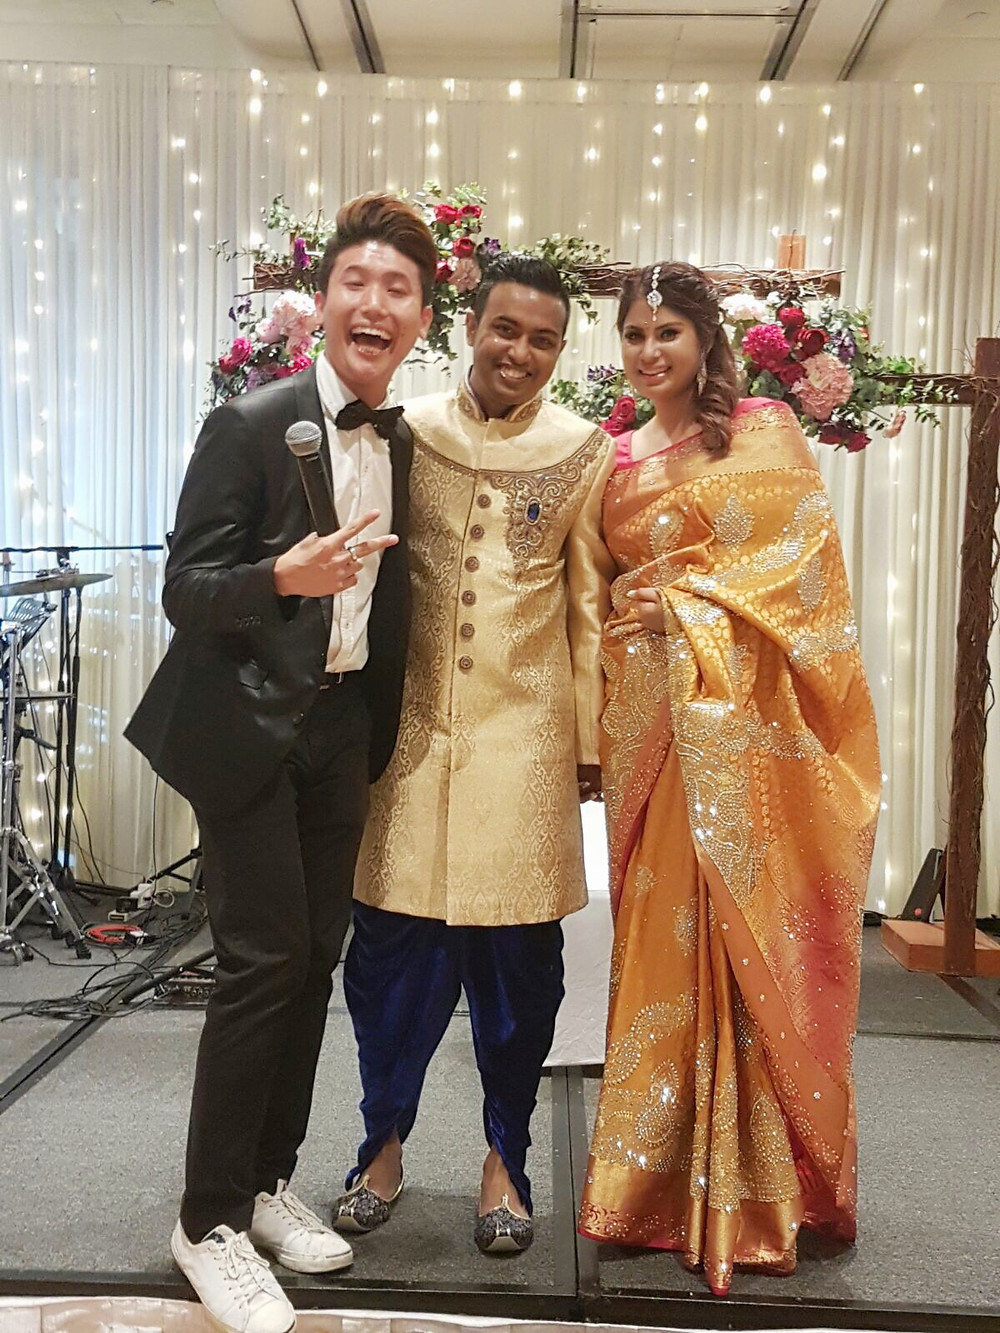 Emcee Singapore - Ainsley Chong, Wedding Dinner of Aaron Rajadurai and Melanie Weller